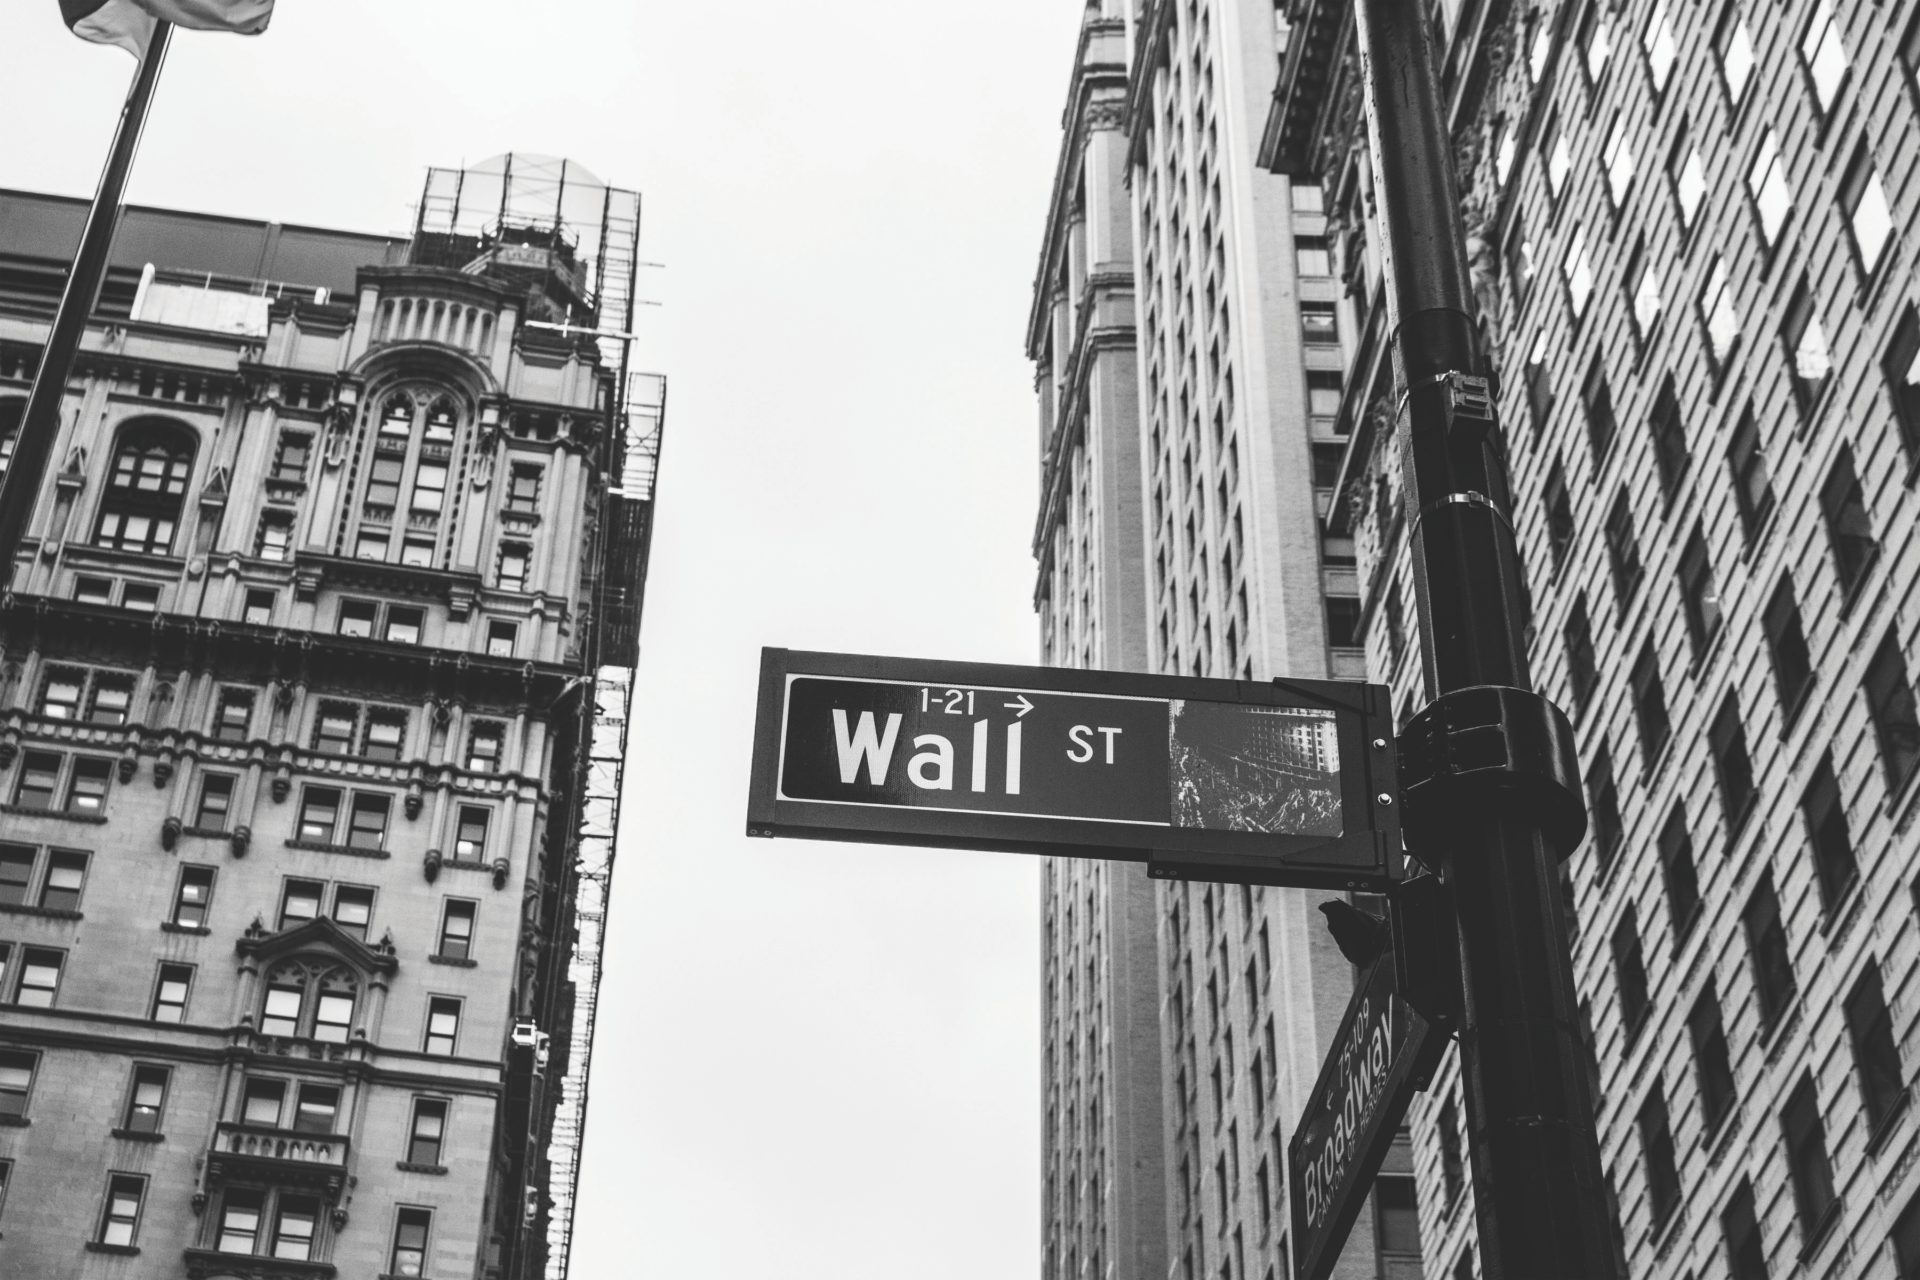 JP Morgan Analyst Calls For Wall Street Foray As Bitcoin (BTC) Stabilizes At $3,400 13